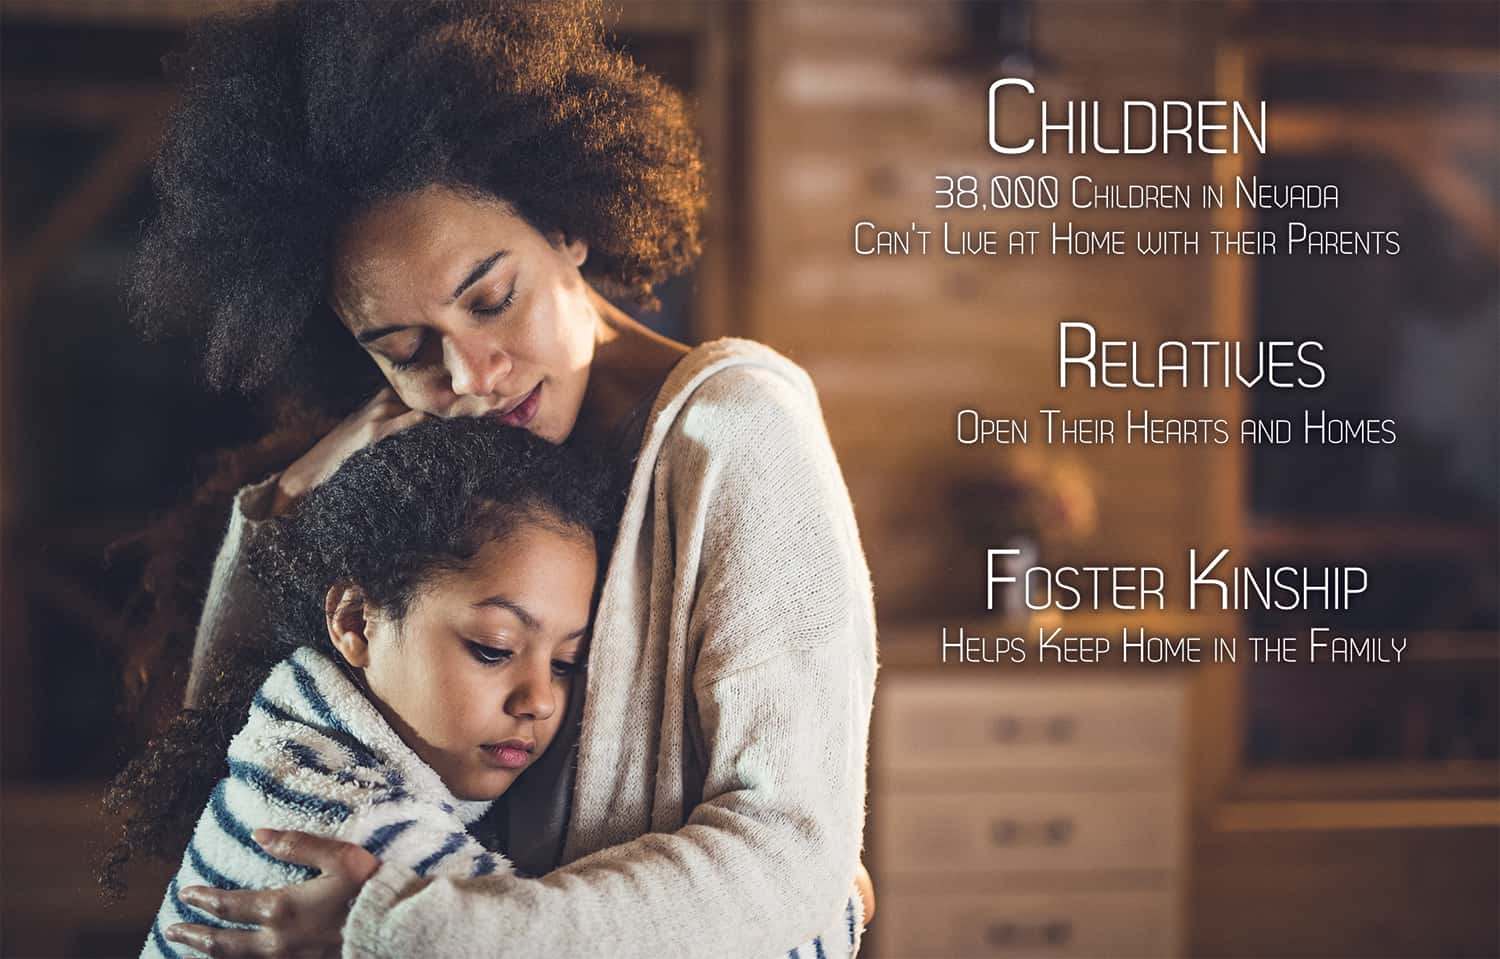 Foster Kinship - Children, Relatives